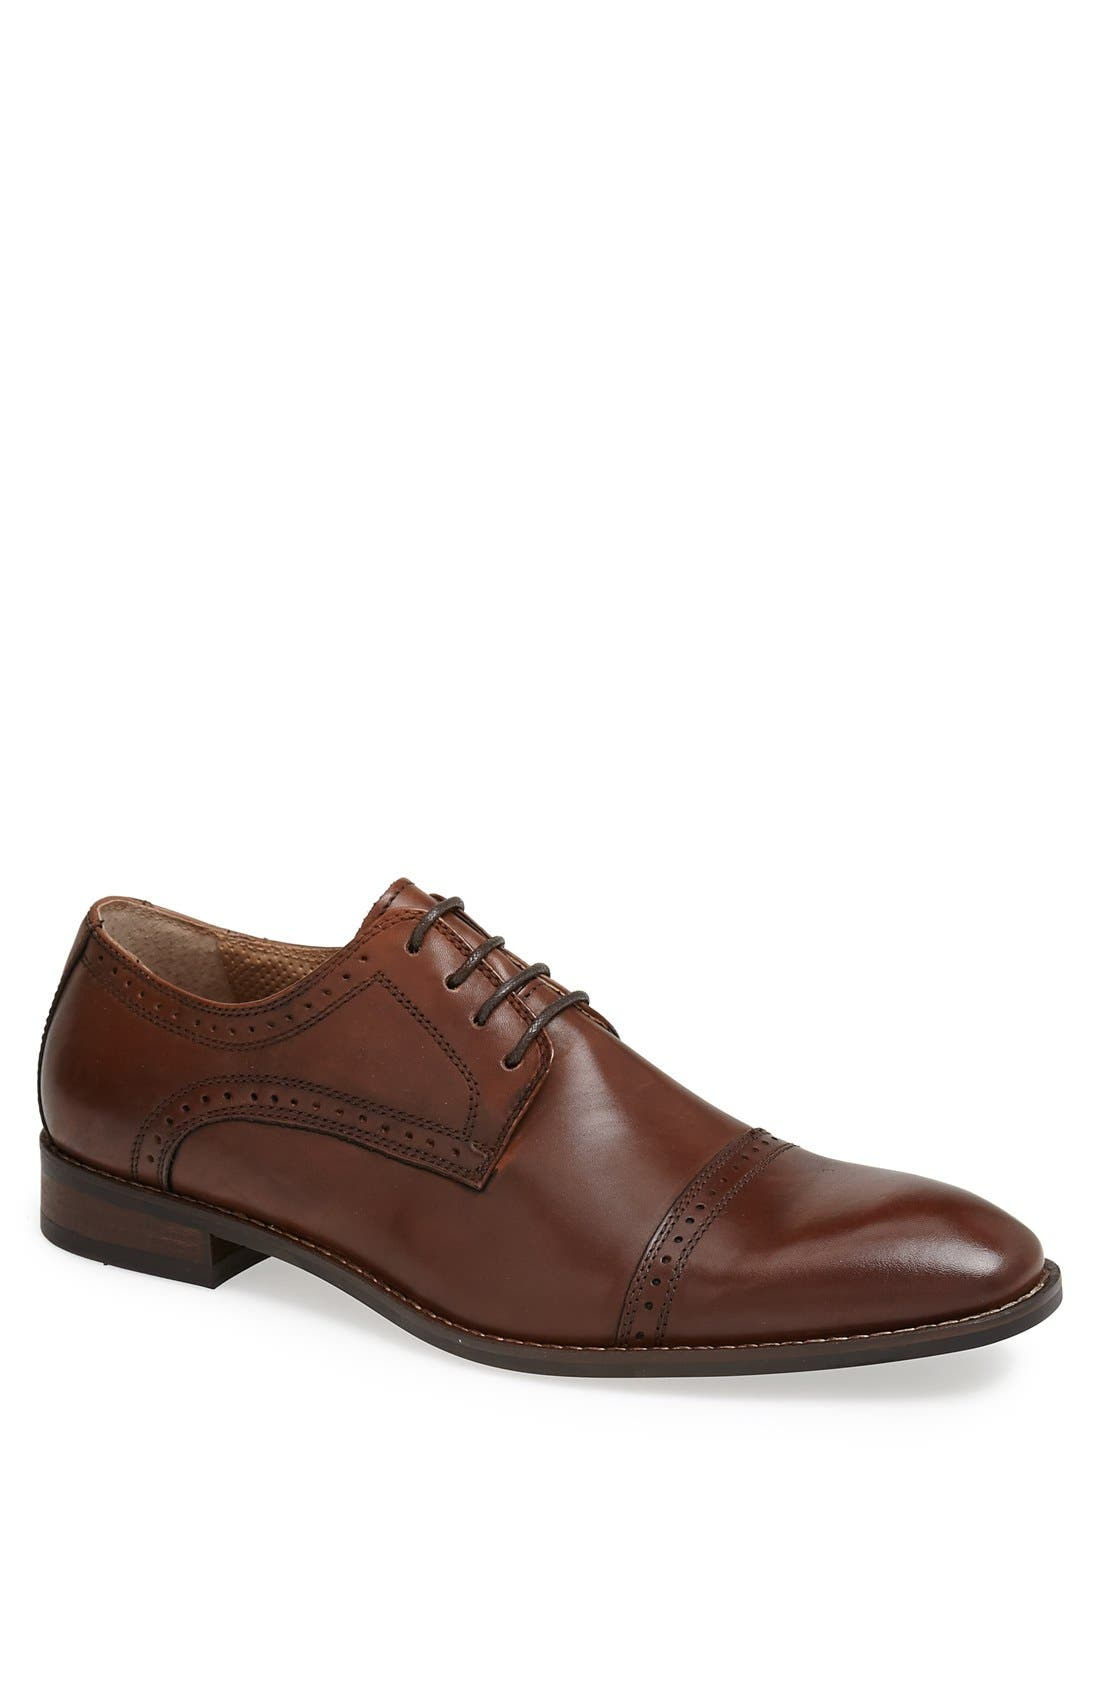 Alternate Image 1 Selected - Vince Camuto 'Rao' Cap Toe Derby (Men)